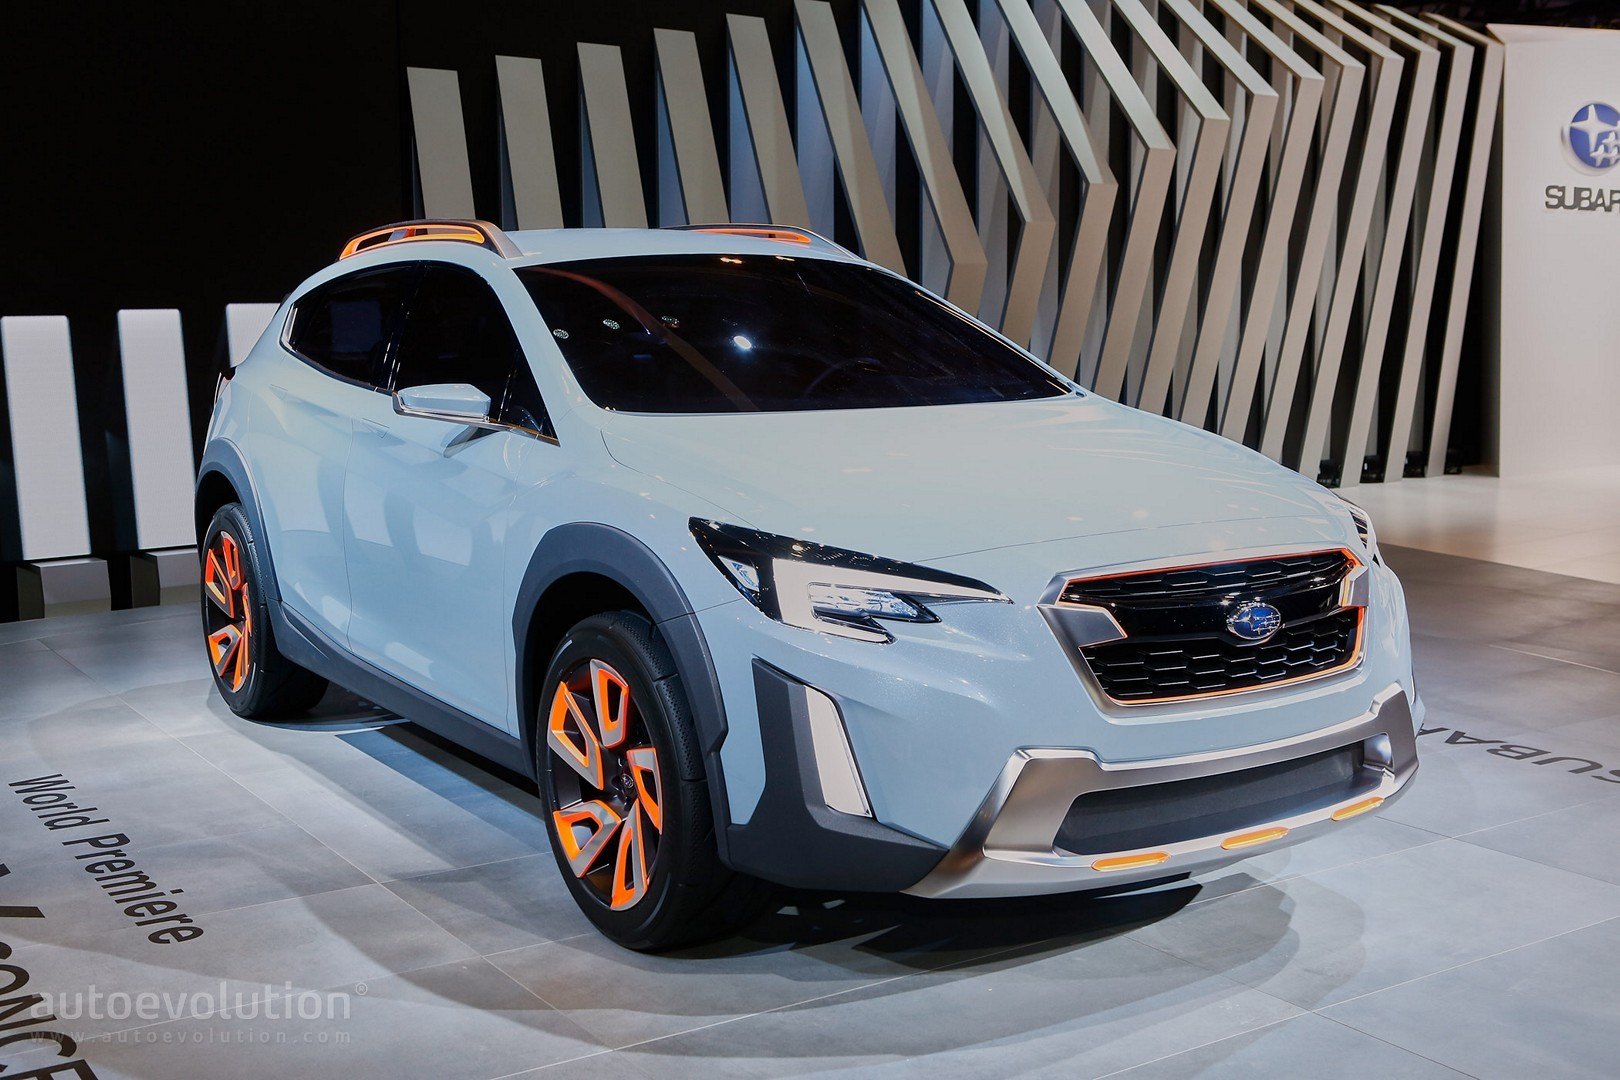 2017 Subaru Xv Crosstrek Previewed By This Rugged Concept In Geneva Autoevolution